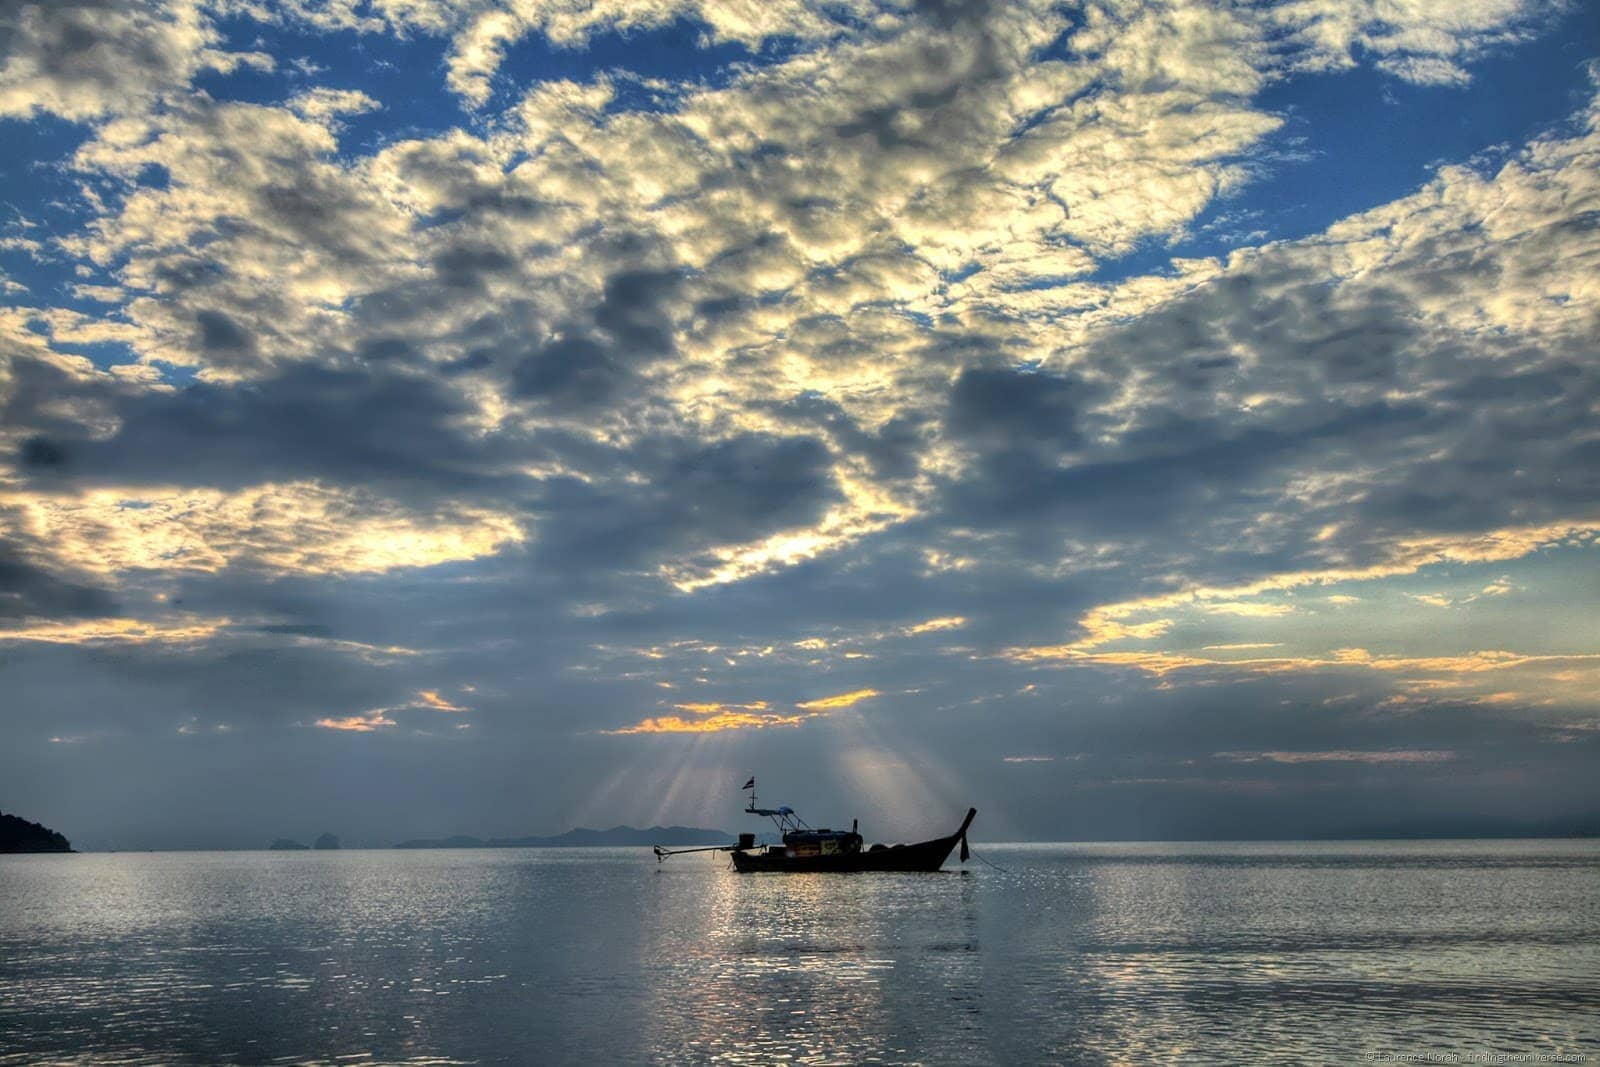 Boat sunset Thailand rays sea islands Andaman coast